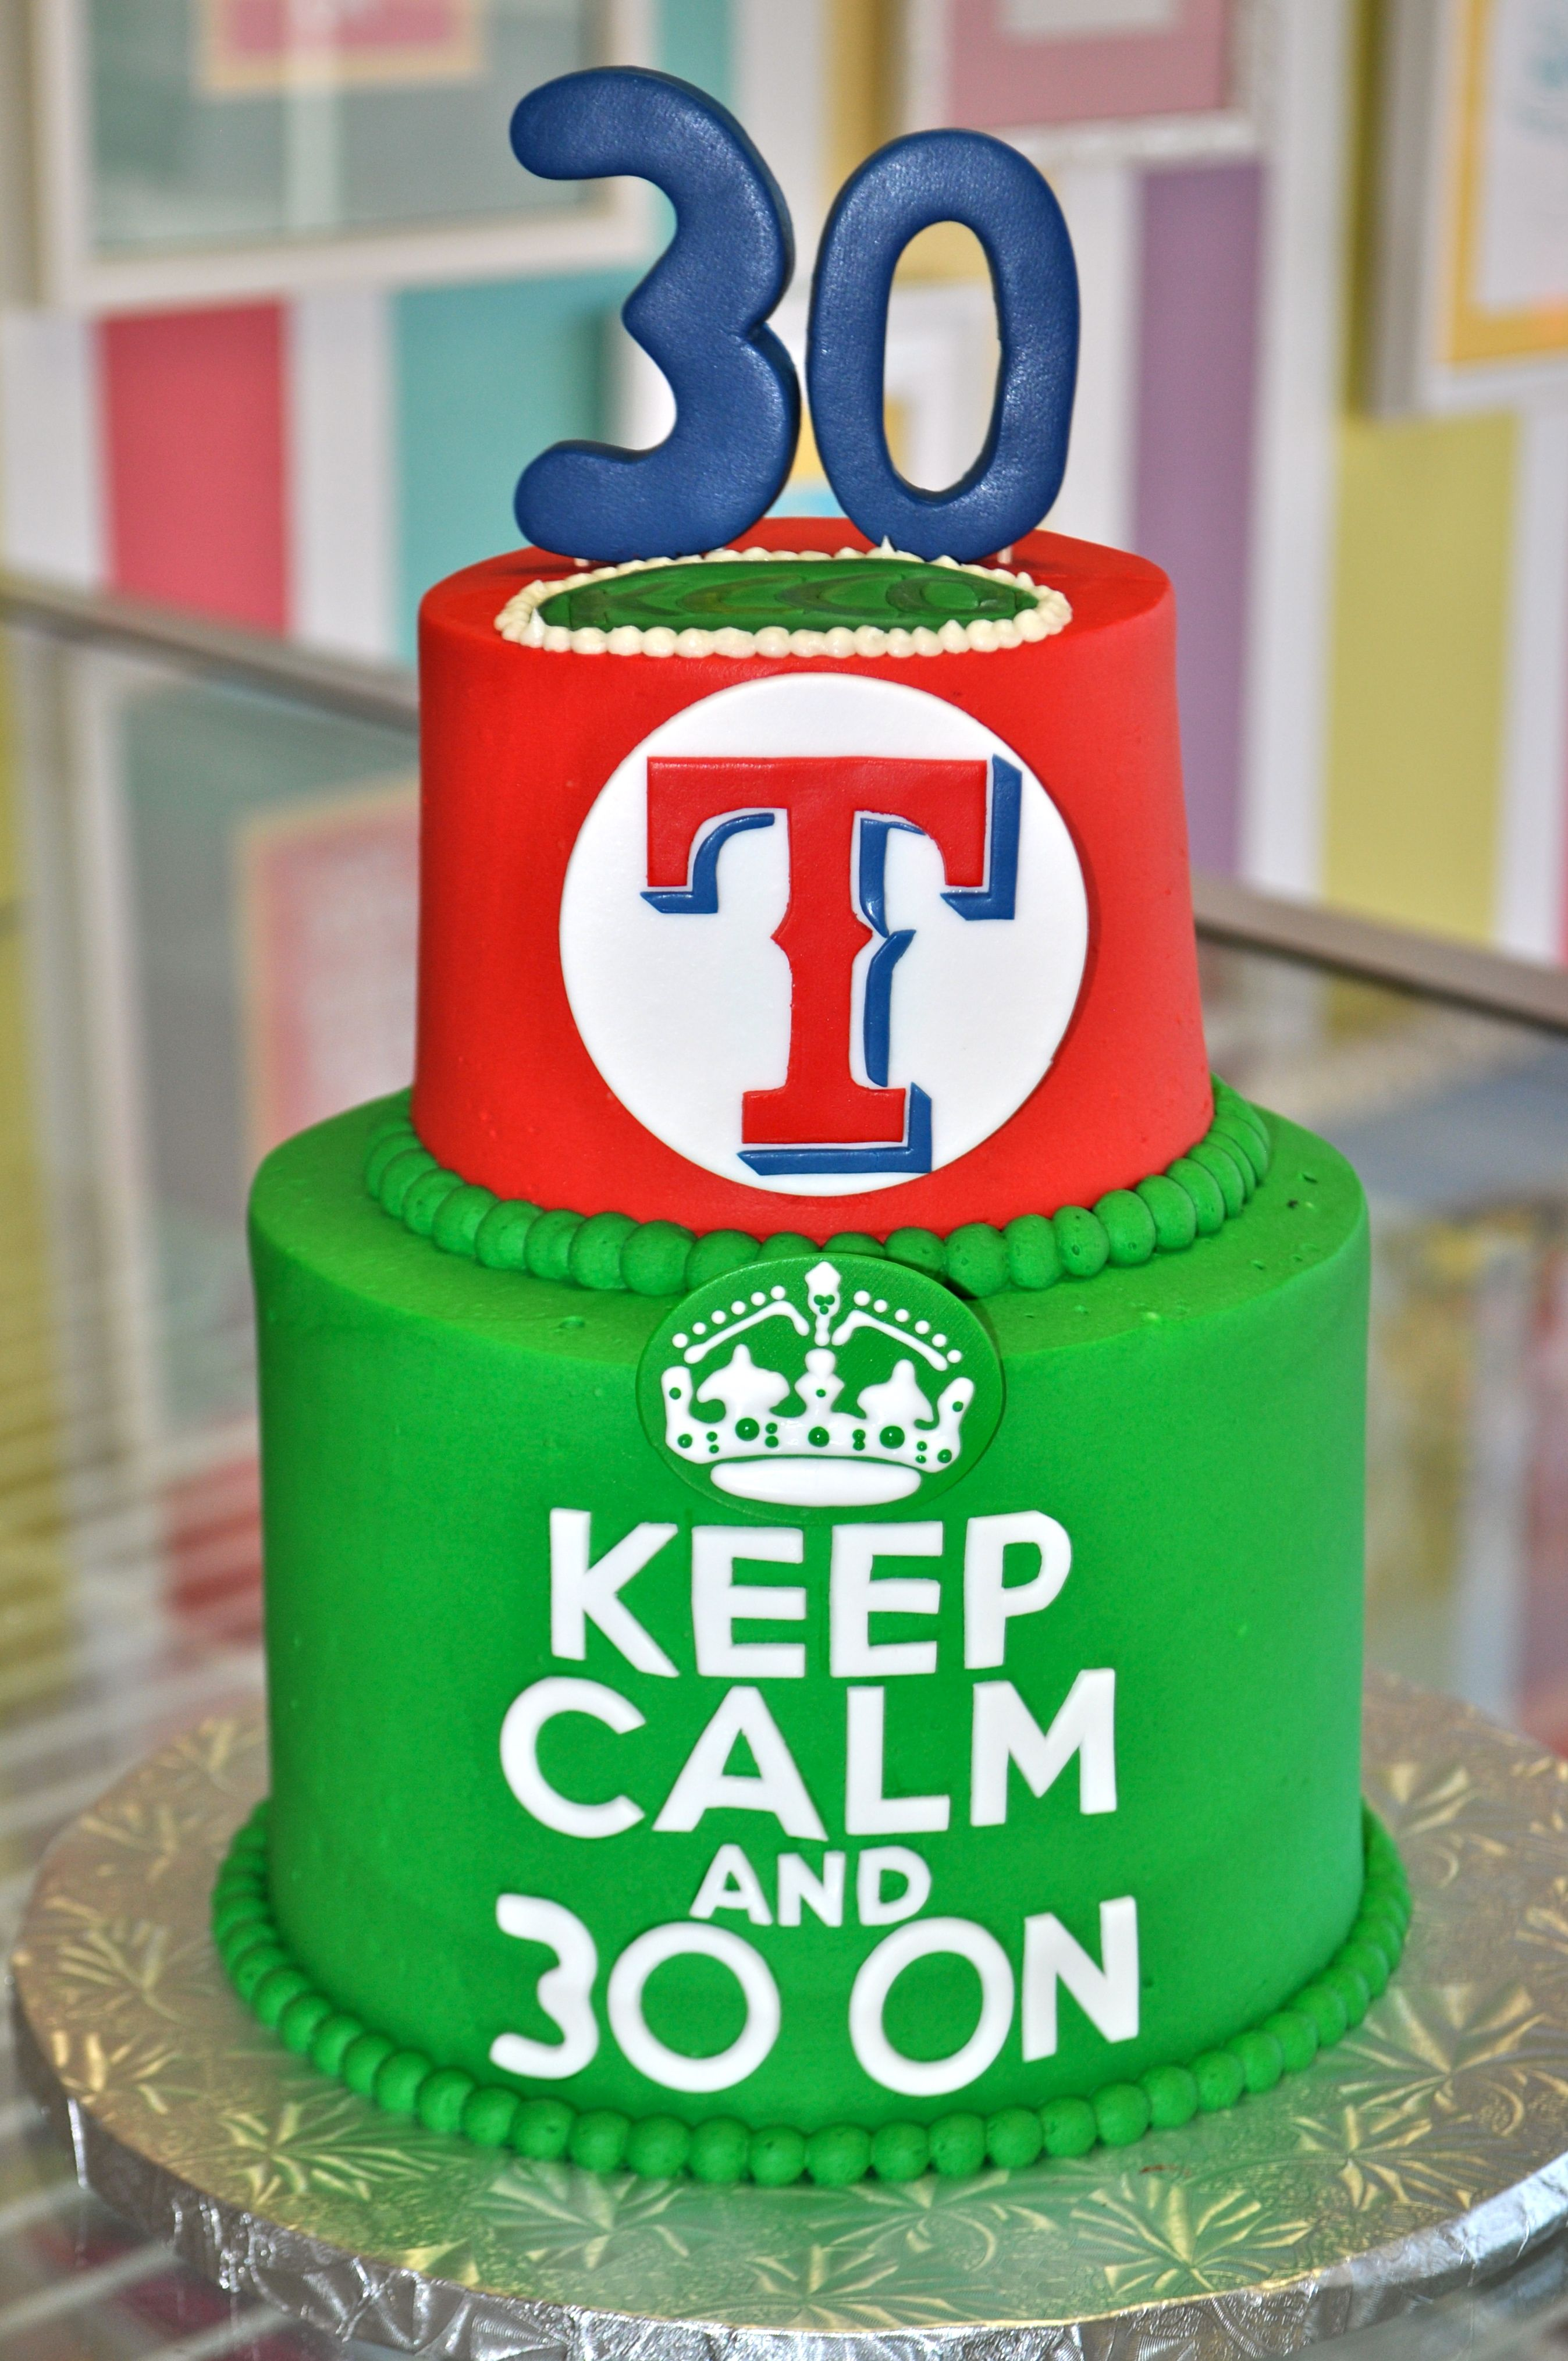 Texas Rangers Keep Calm And Chive On Th Birthday Cake Www - 30 year old birthday cake